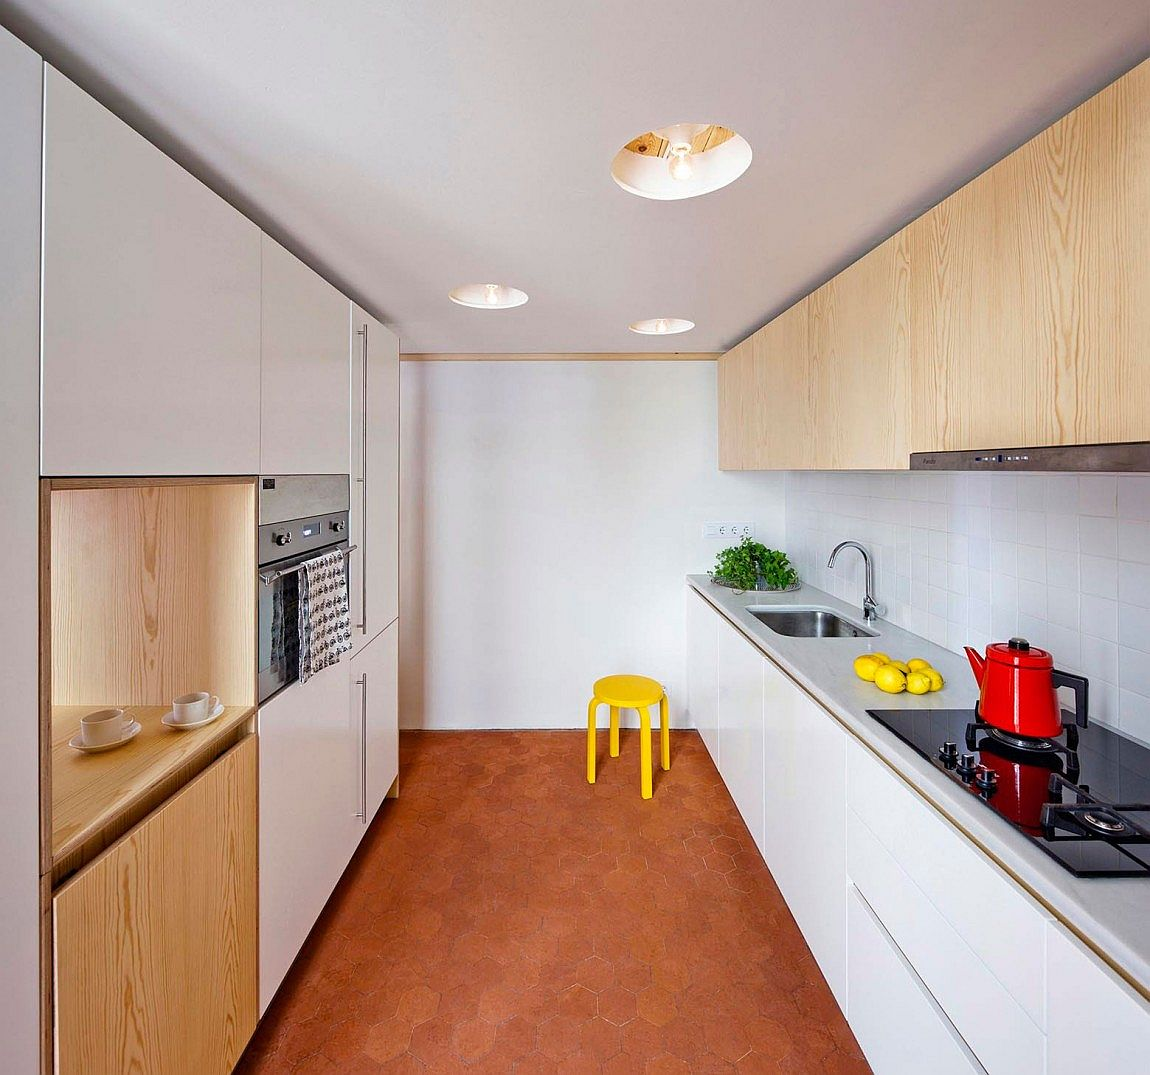 space savvy kitchen mezzanine small barcelona apartment small kitchen requires innovative approach designed kitchen